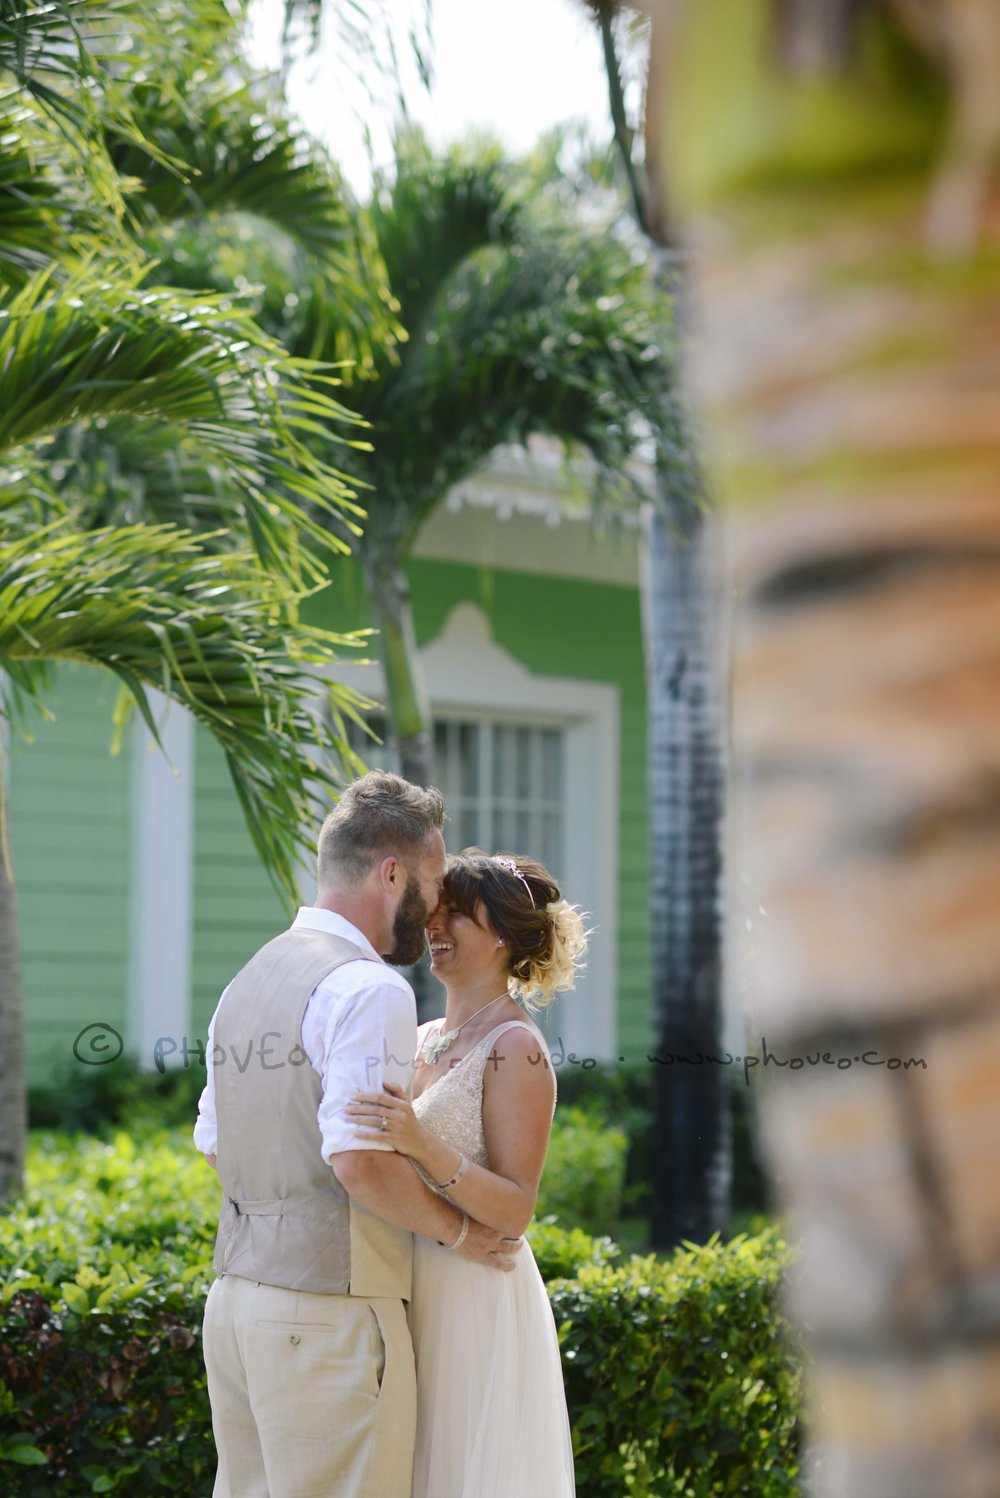 WM_20160923_Alicia+Sean_39.jpg